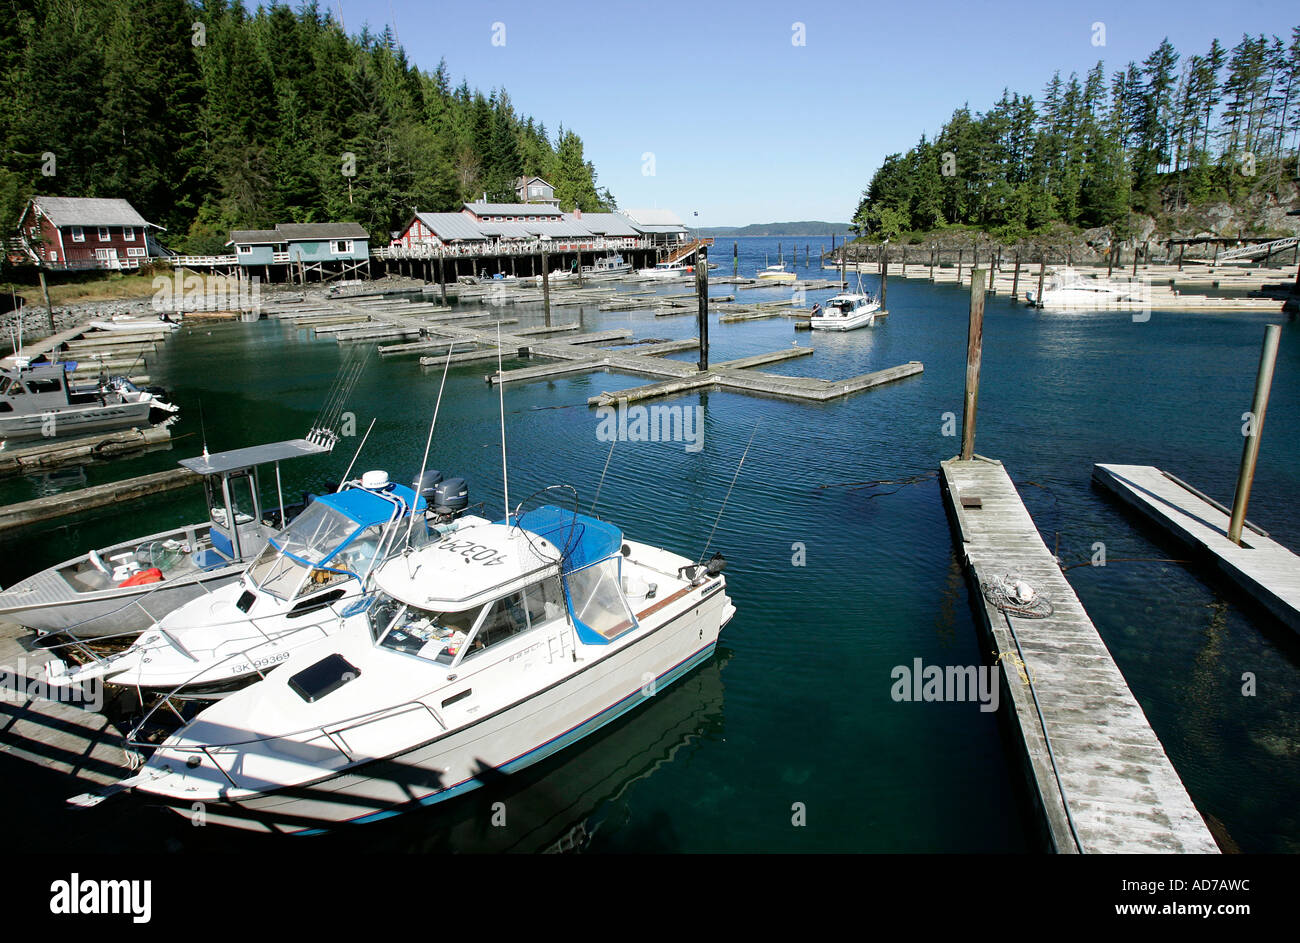 Horbour of fishing village Telegraph Cove on Vancouver Island, British Columbia, Canada - Stock Image